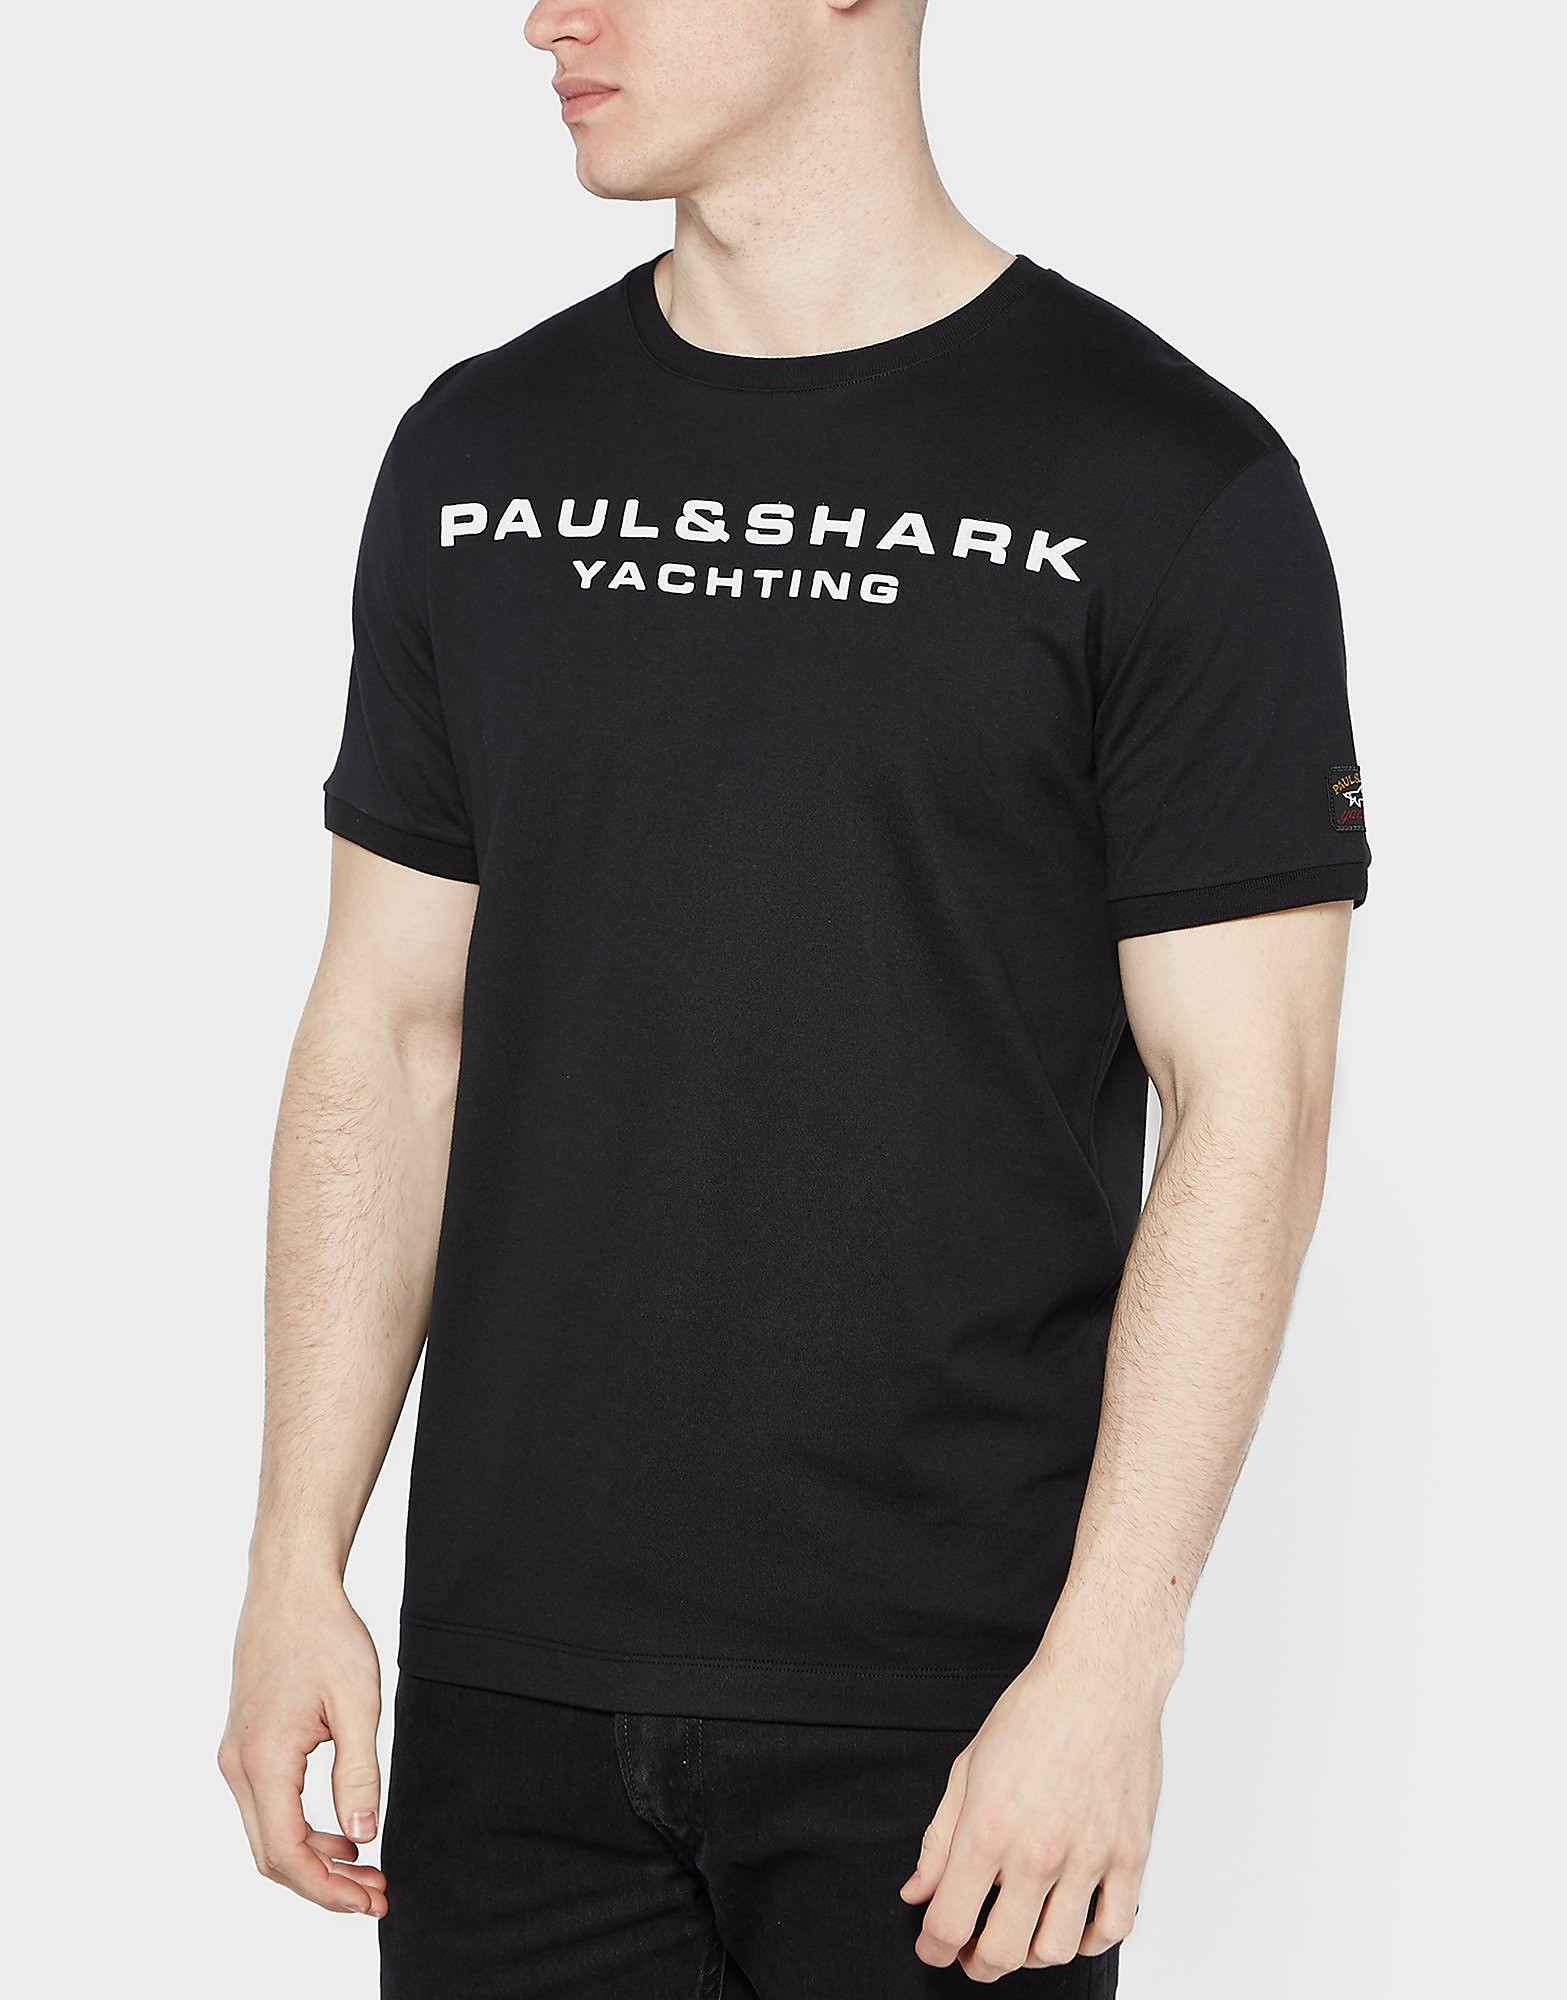 Paul and Shark Yachting T-Shirt - Exclusive